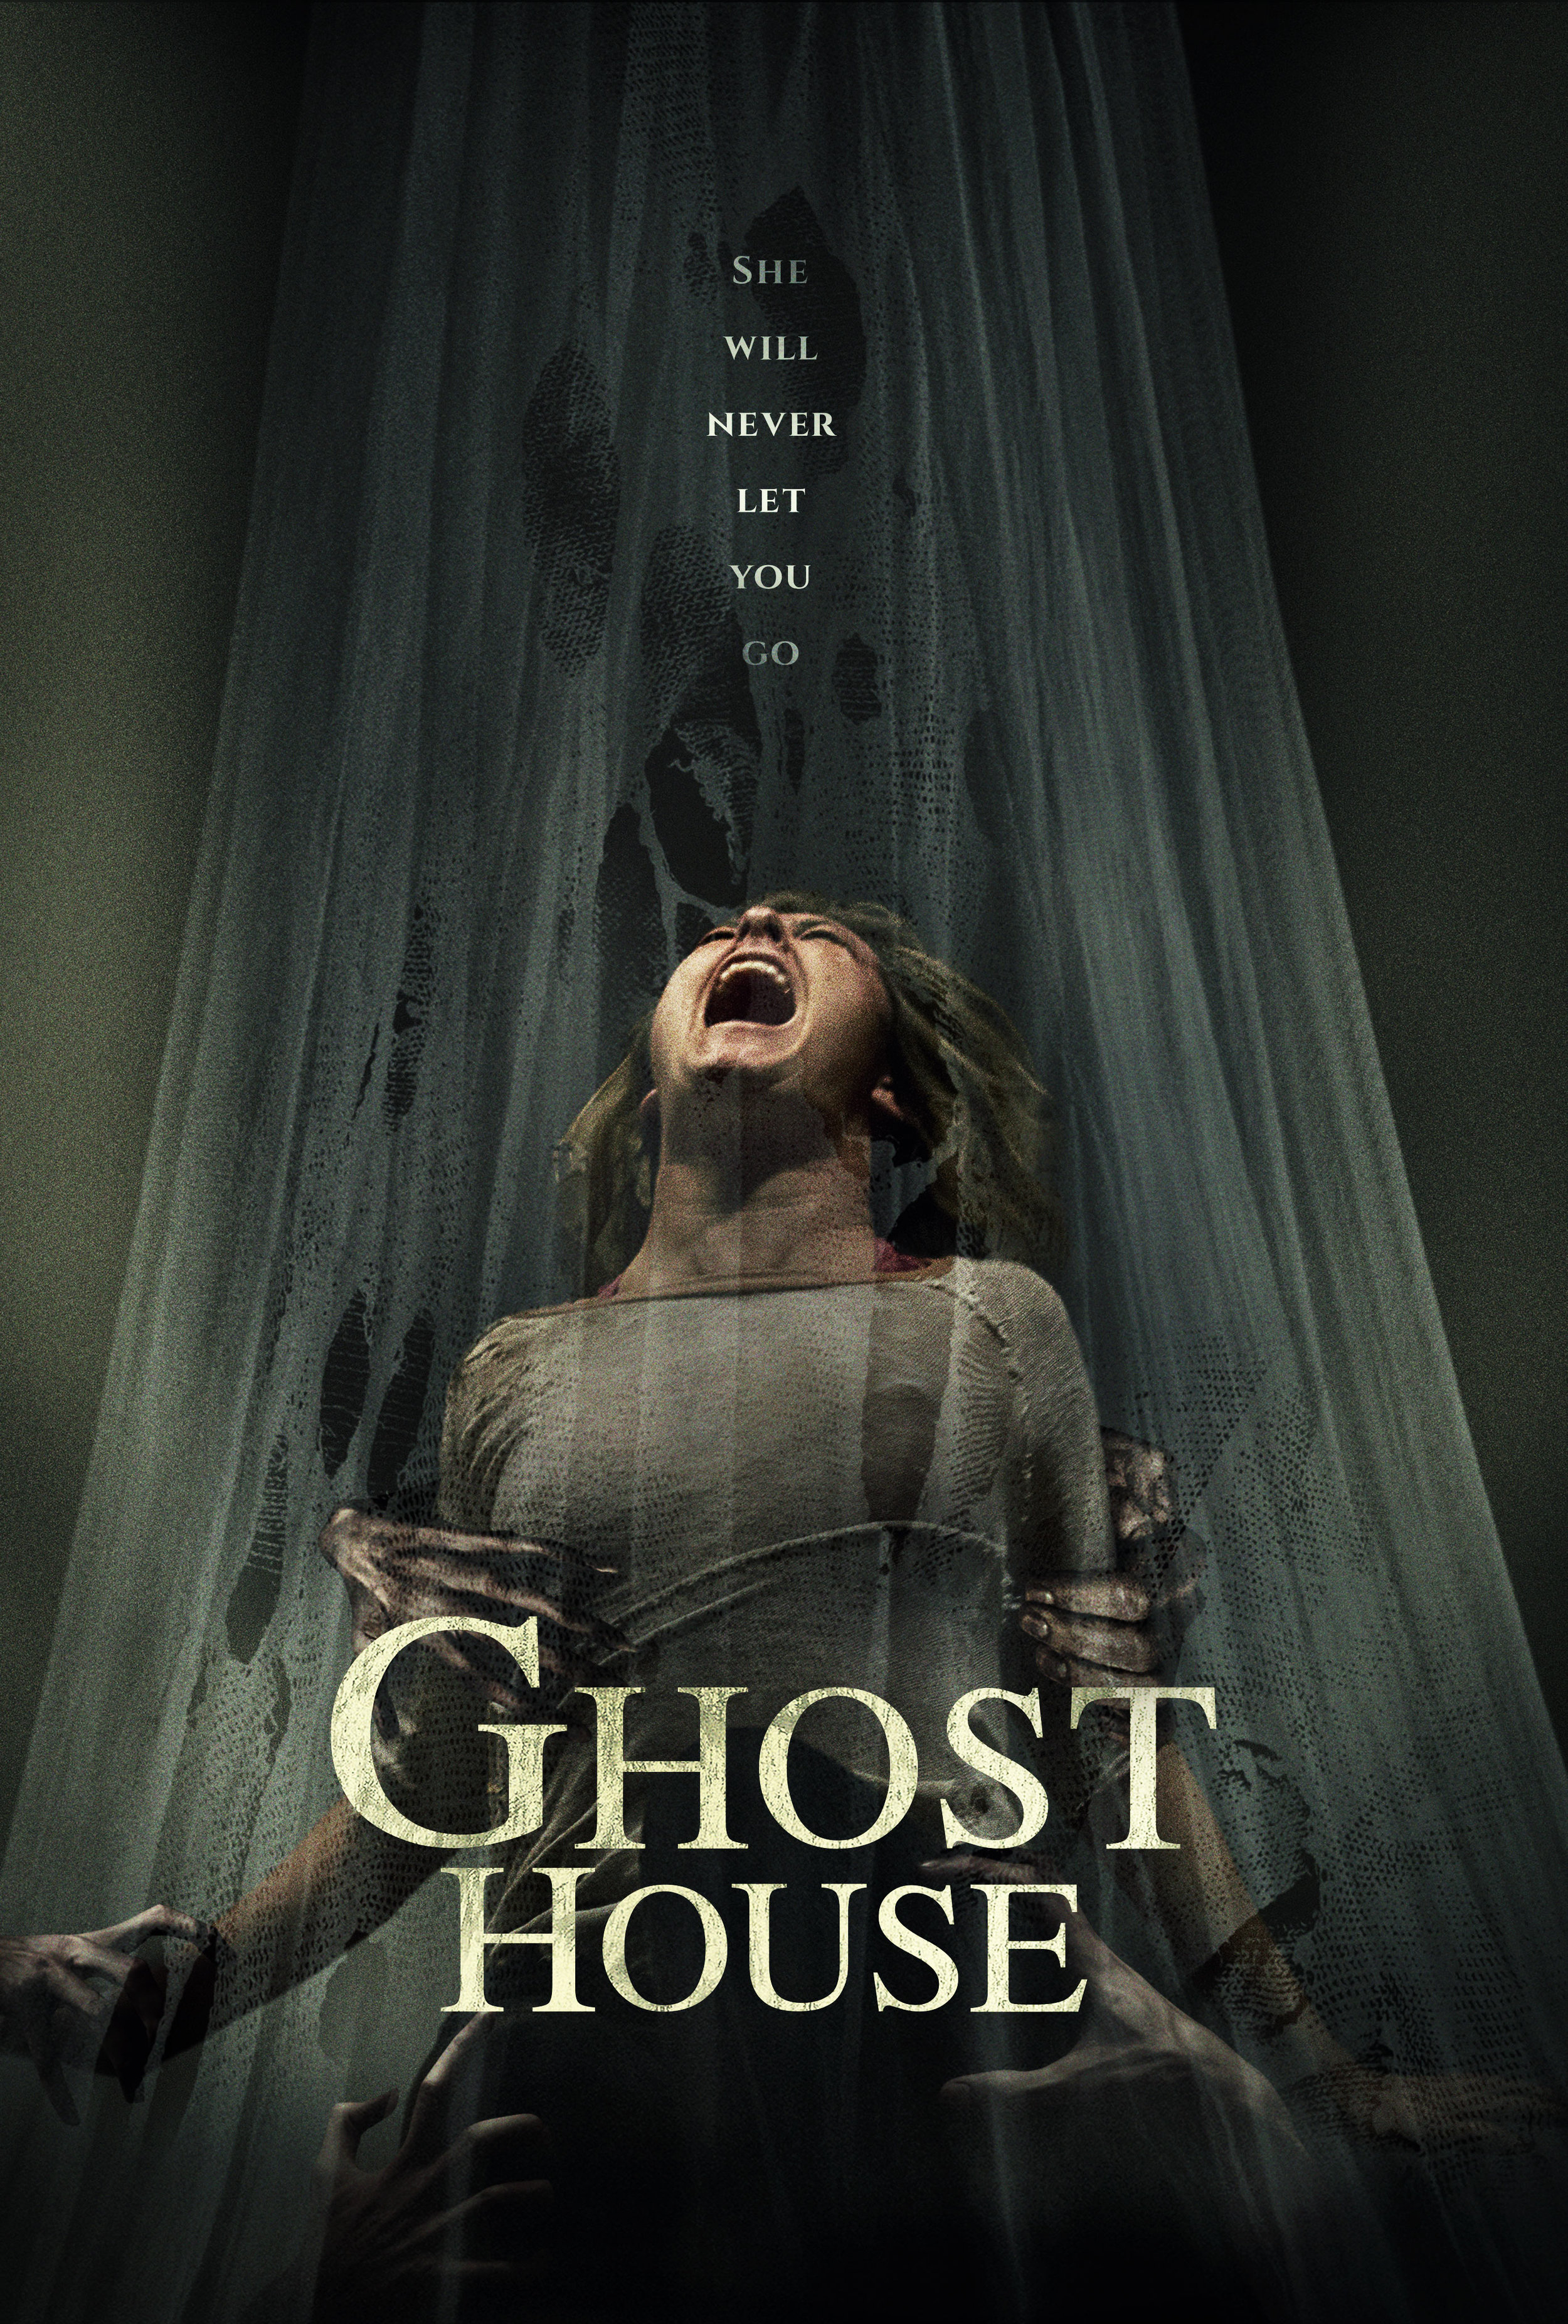 1h 29min    Lost in the Thai countryside, a young American couple find themselves haunted by an evil spirit. Desperate for a solution, they spiral deeper into a surreal, supernatural world that leads them into a frenzied, terrifying confrontation with pure evil.    Release date :2017 ( USA )   Director : Rich Ragsdale    Screenplay : Jason Chase Tyrrell , Kevin O'Sullivan    Producers : Kevin Ragsdale , Veronica Radaelli